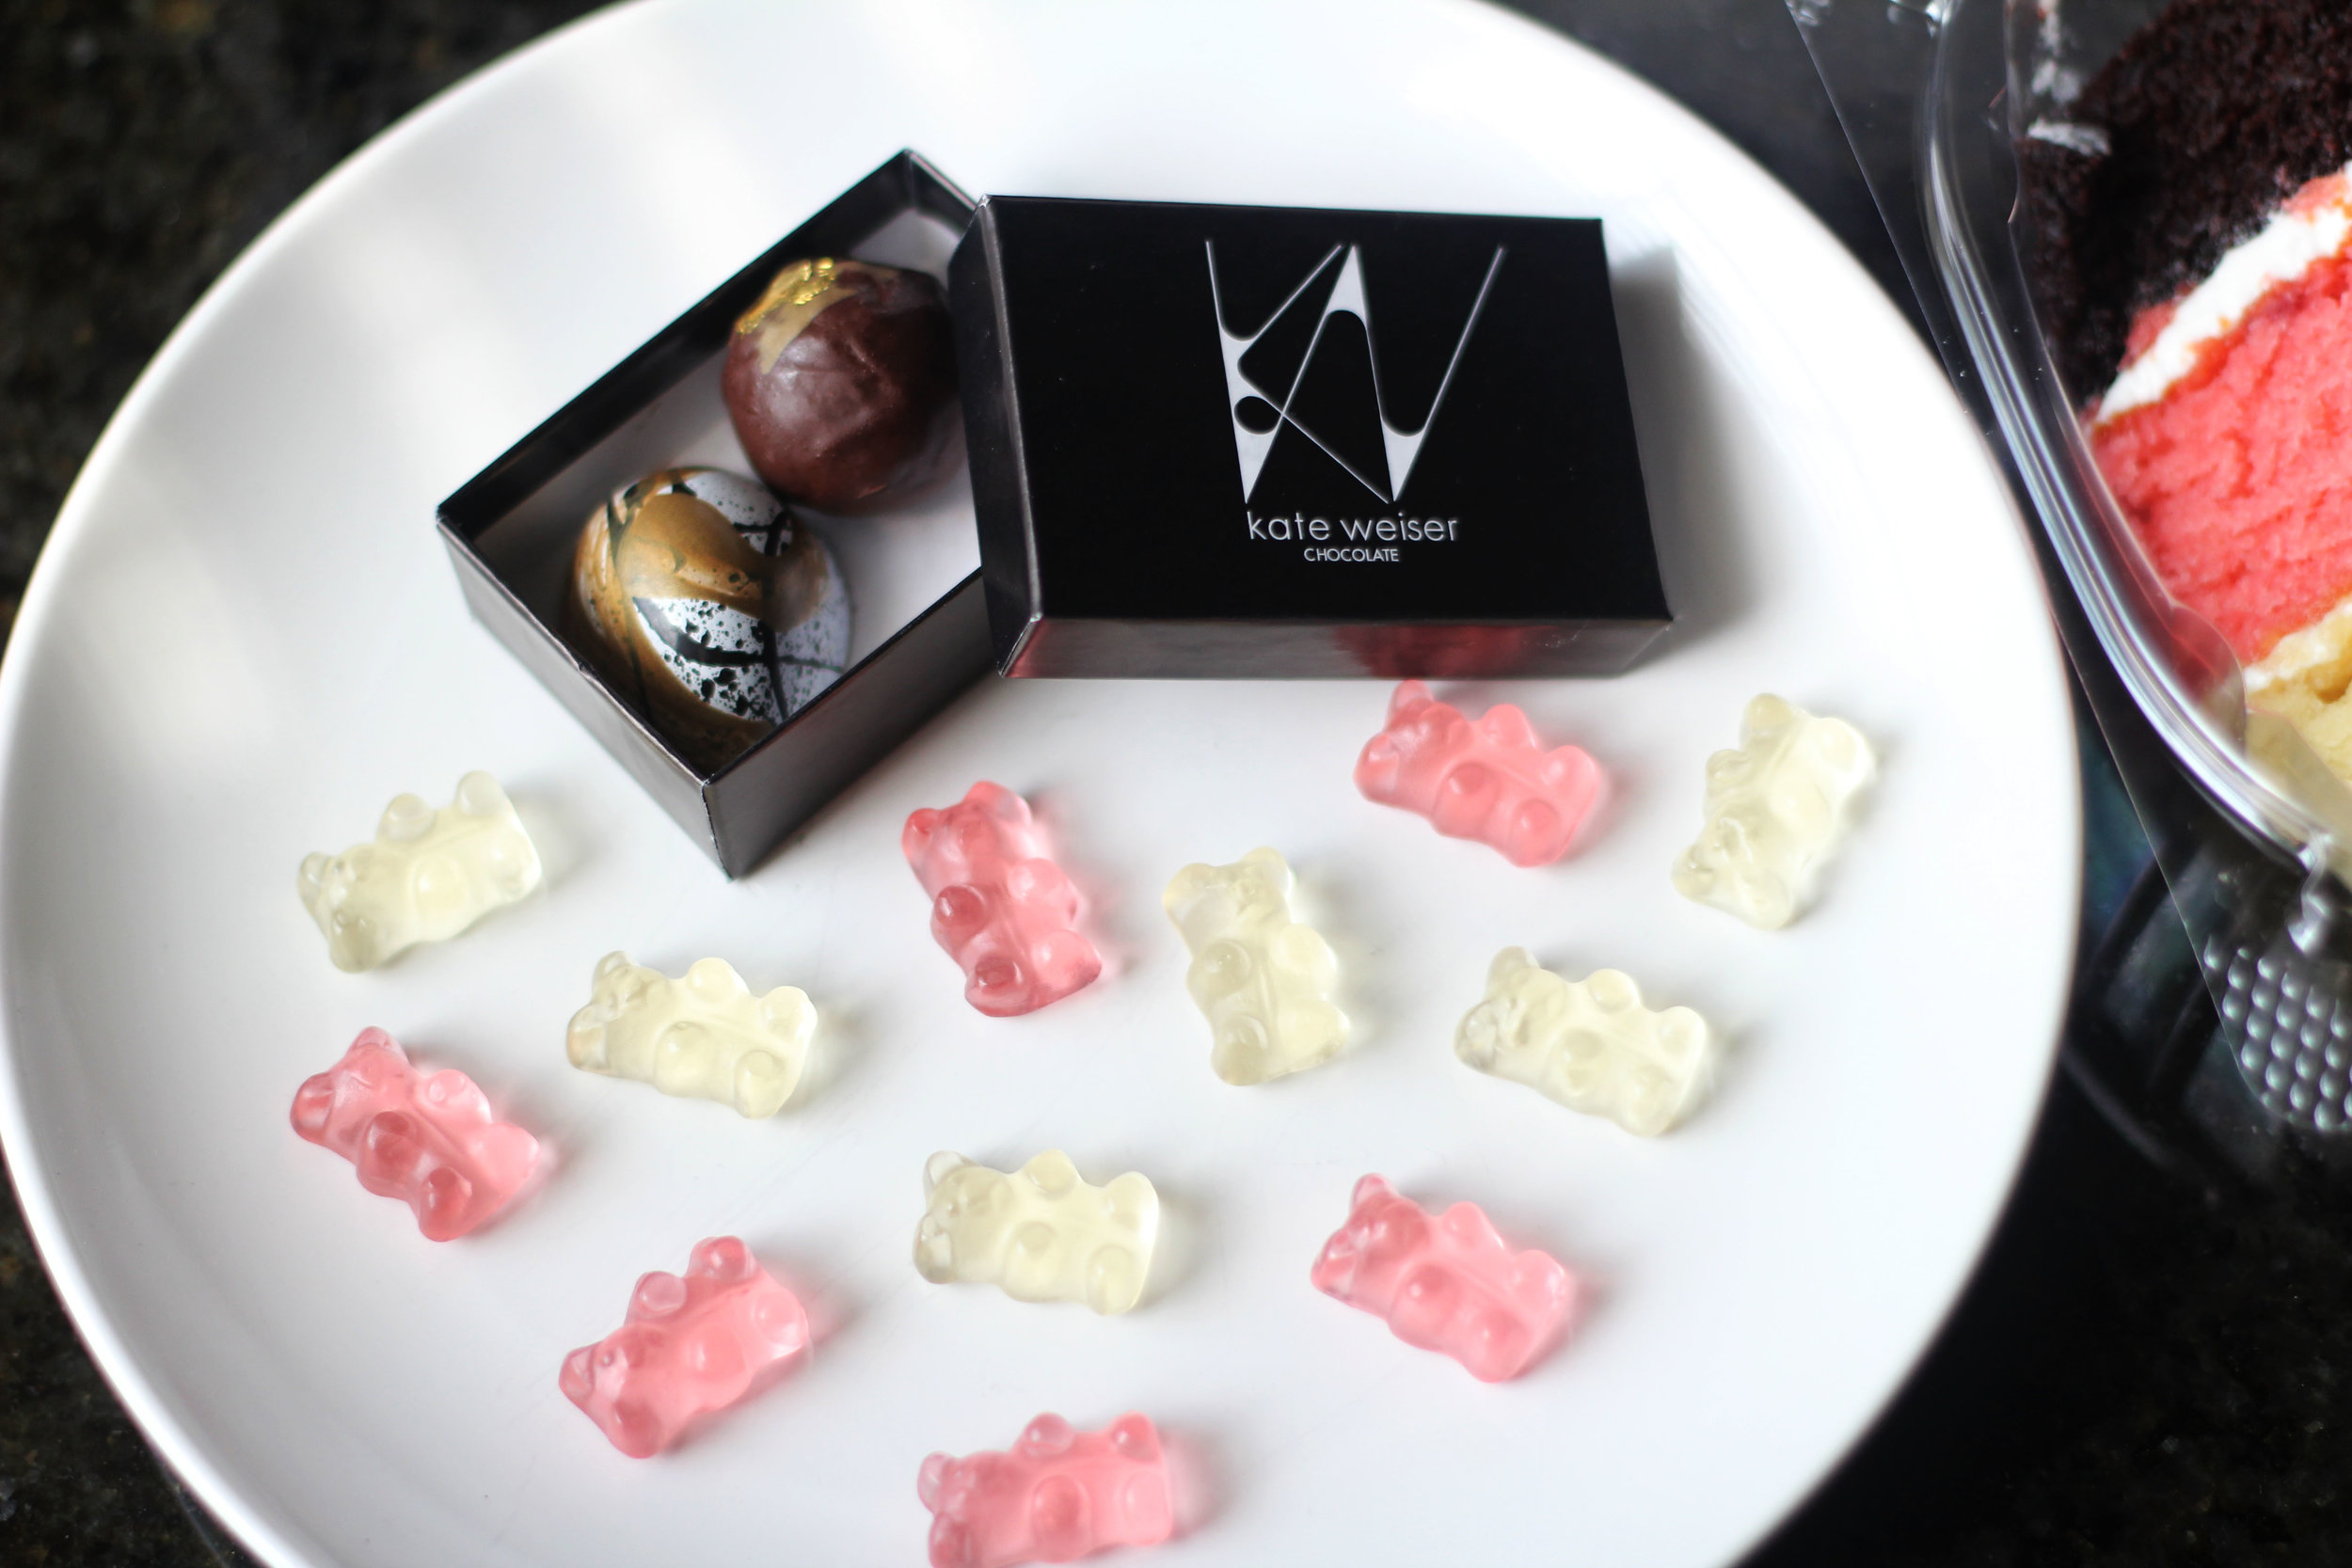 Kate Weiser chocolate from Trinity Groves and Baby Champagne Bears infused with Dom Pérignon Vintage Champagne (Brut & Rosé) from Sugarfina at Market in Highland Park Village.